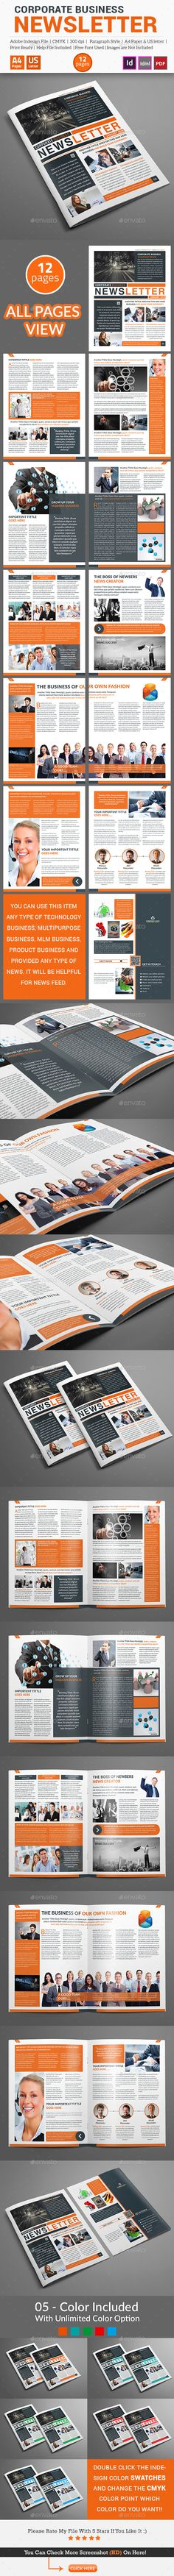 Newsletter For Corporate Business (12 pages) Template PSD. Download here: http://graphicriver.net/item/newsletter-for-corporate-business-12-pages/15731746?ref=ksioks